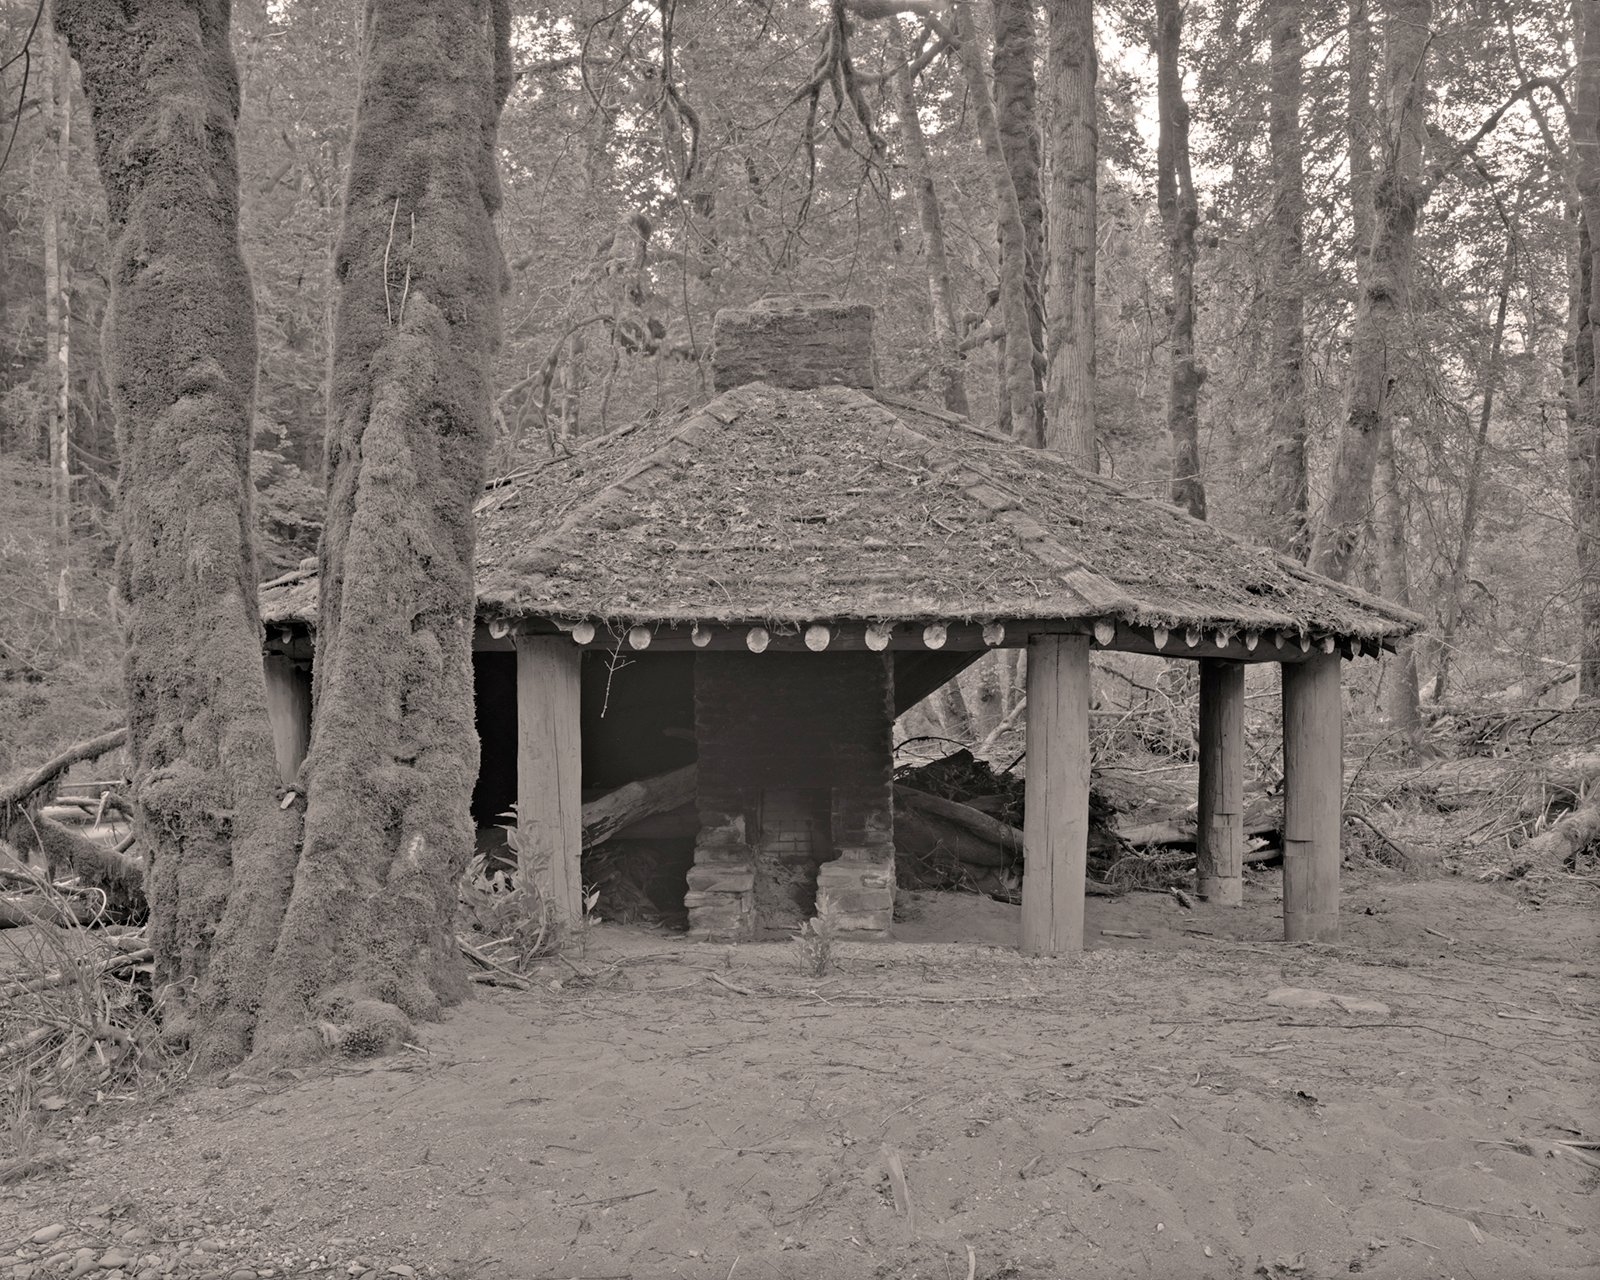 Elwha River Kitchen Shelter HABS